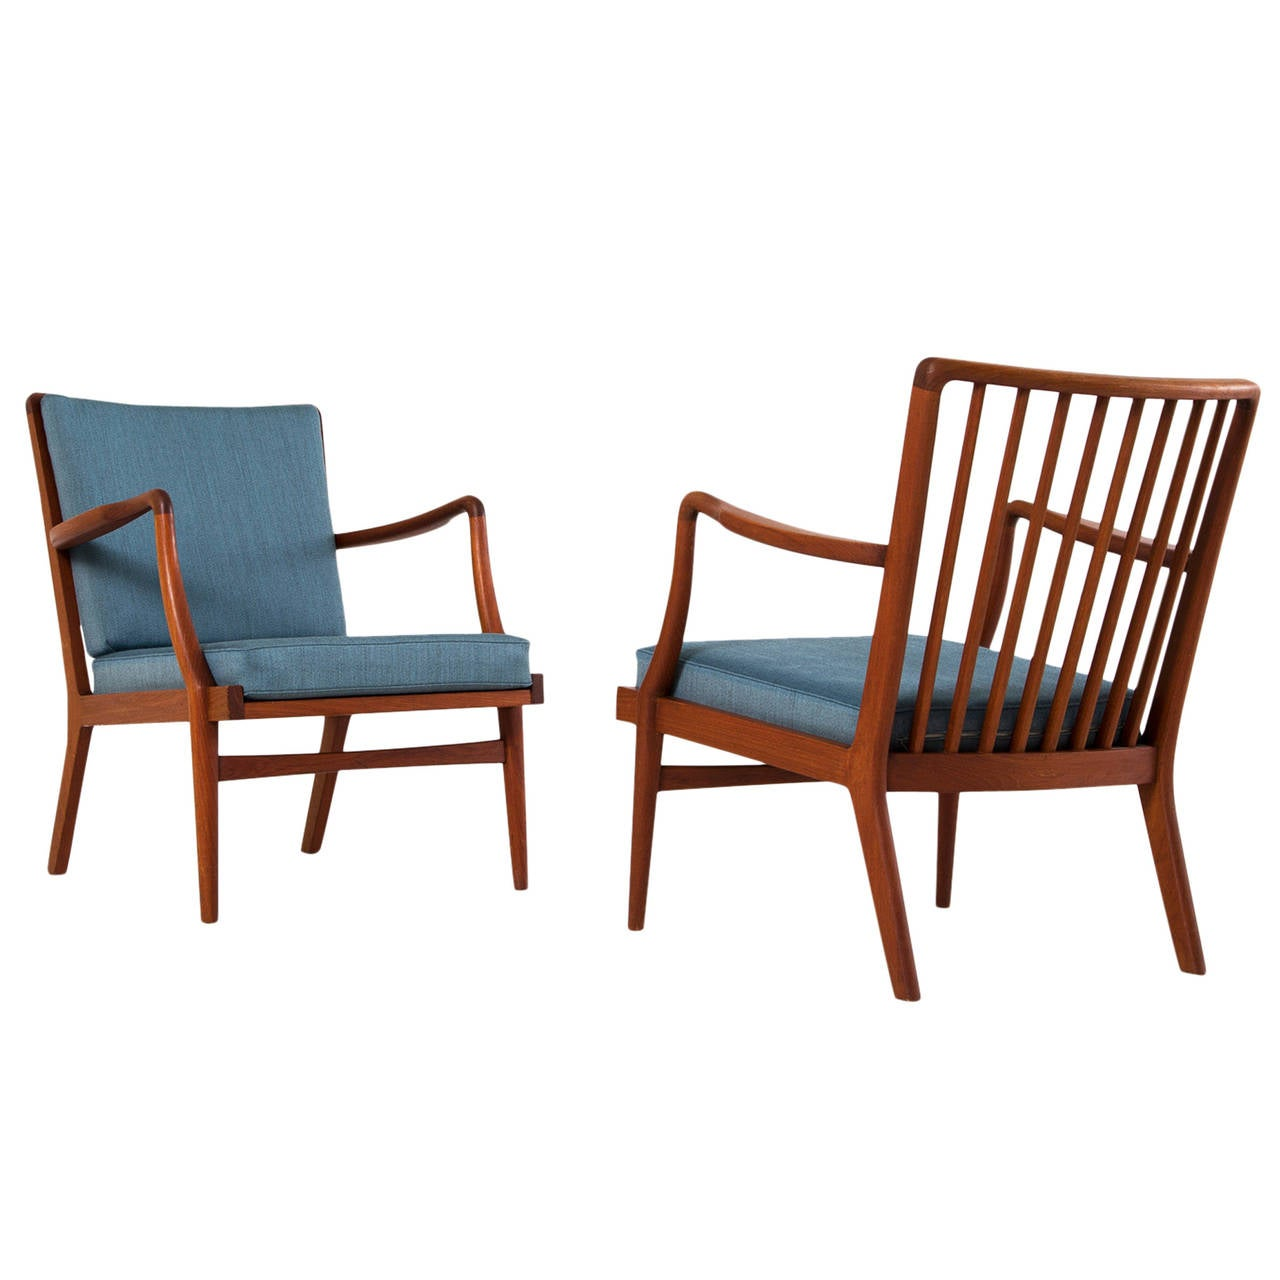 Solid Teak Lounge Chairs By Peder Christensen For Sale At 1stdibs